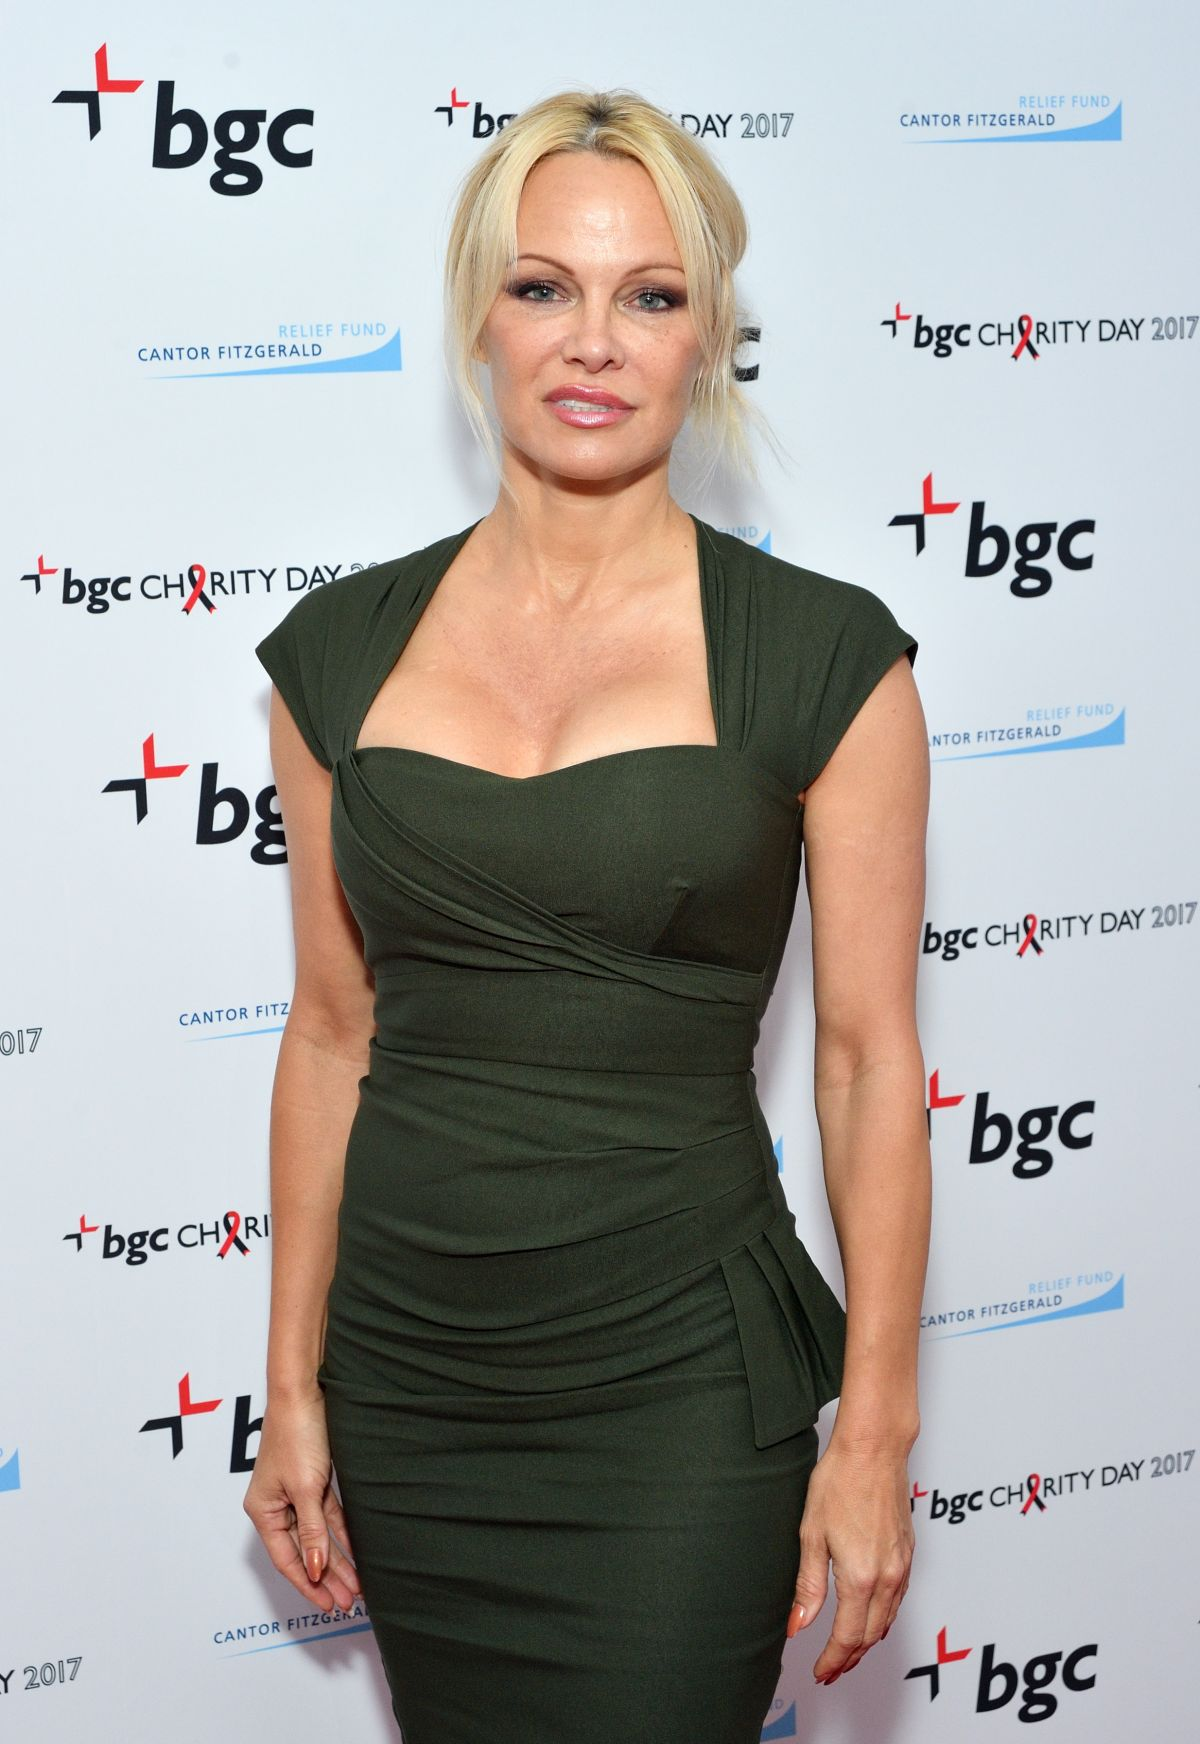 PAMELA ANDERSON at BGC Charity Day in London 09/11/2017